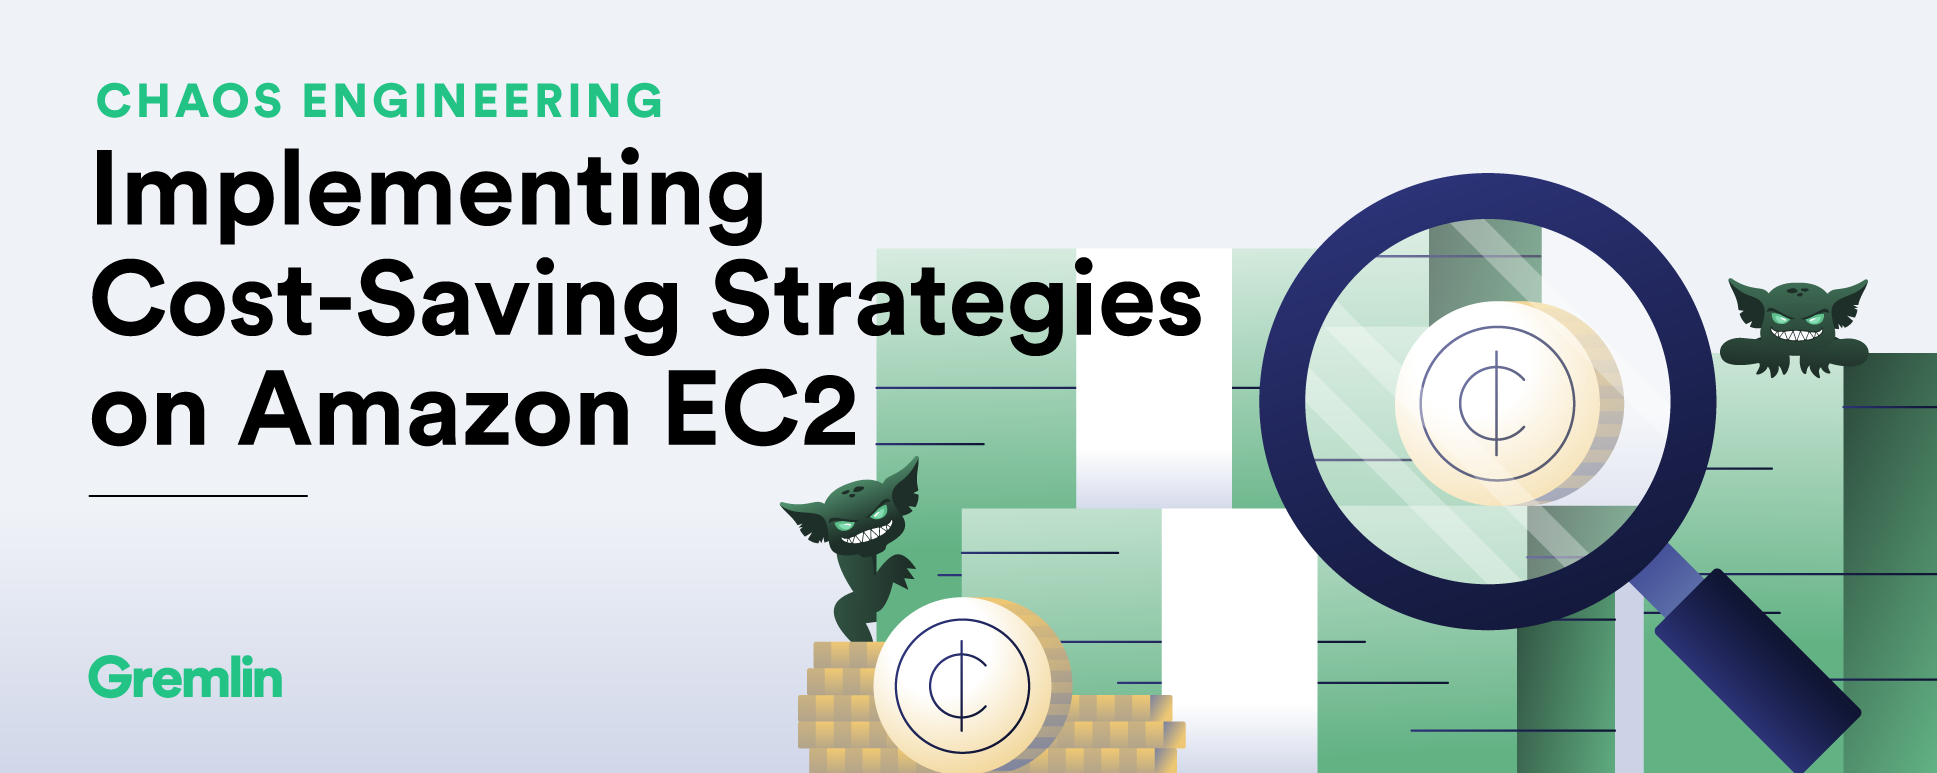 Implementing cost-saving strategies on Amazon EC2 with Chaos Engineering